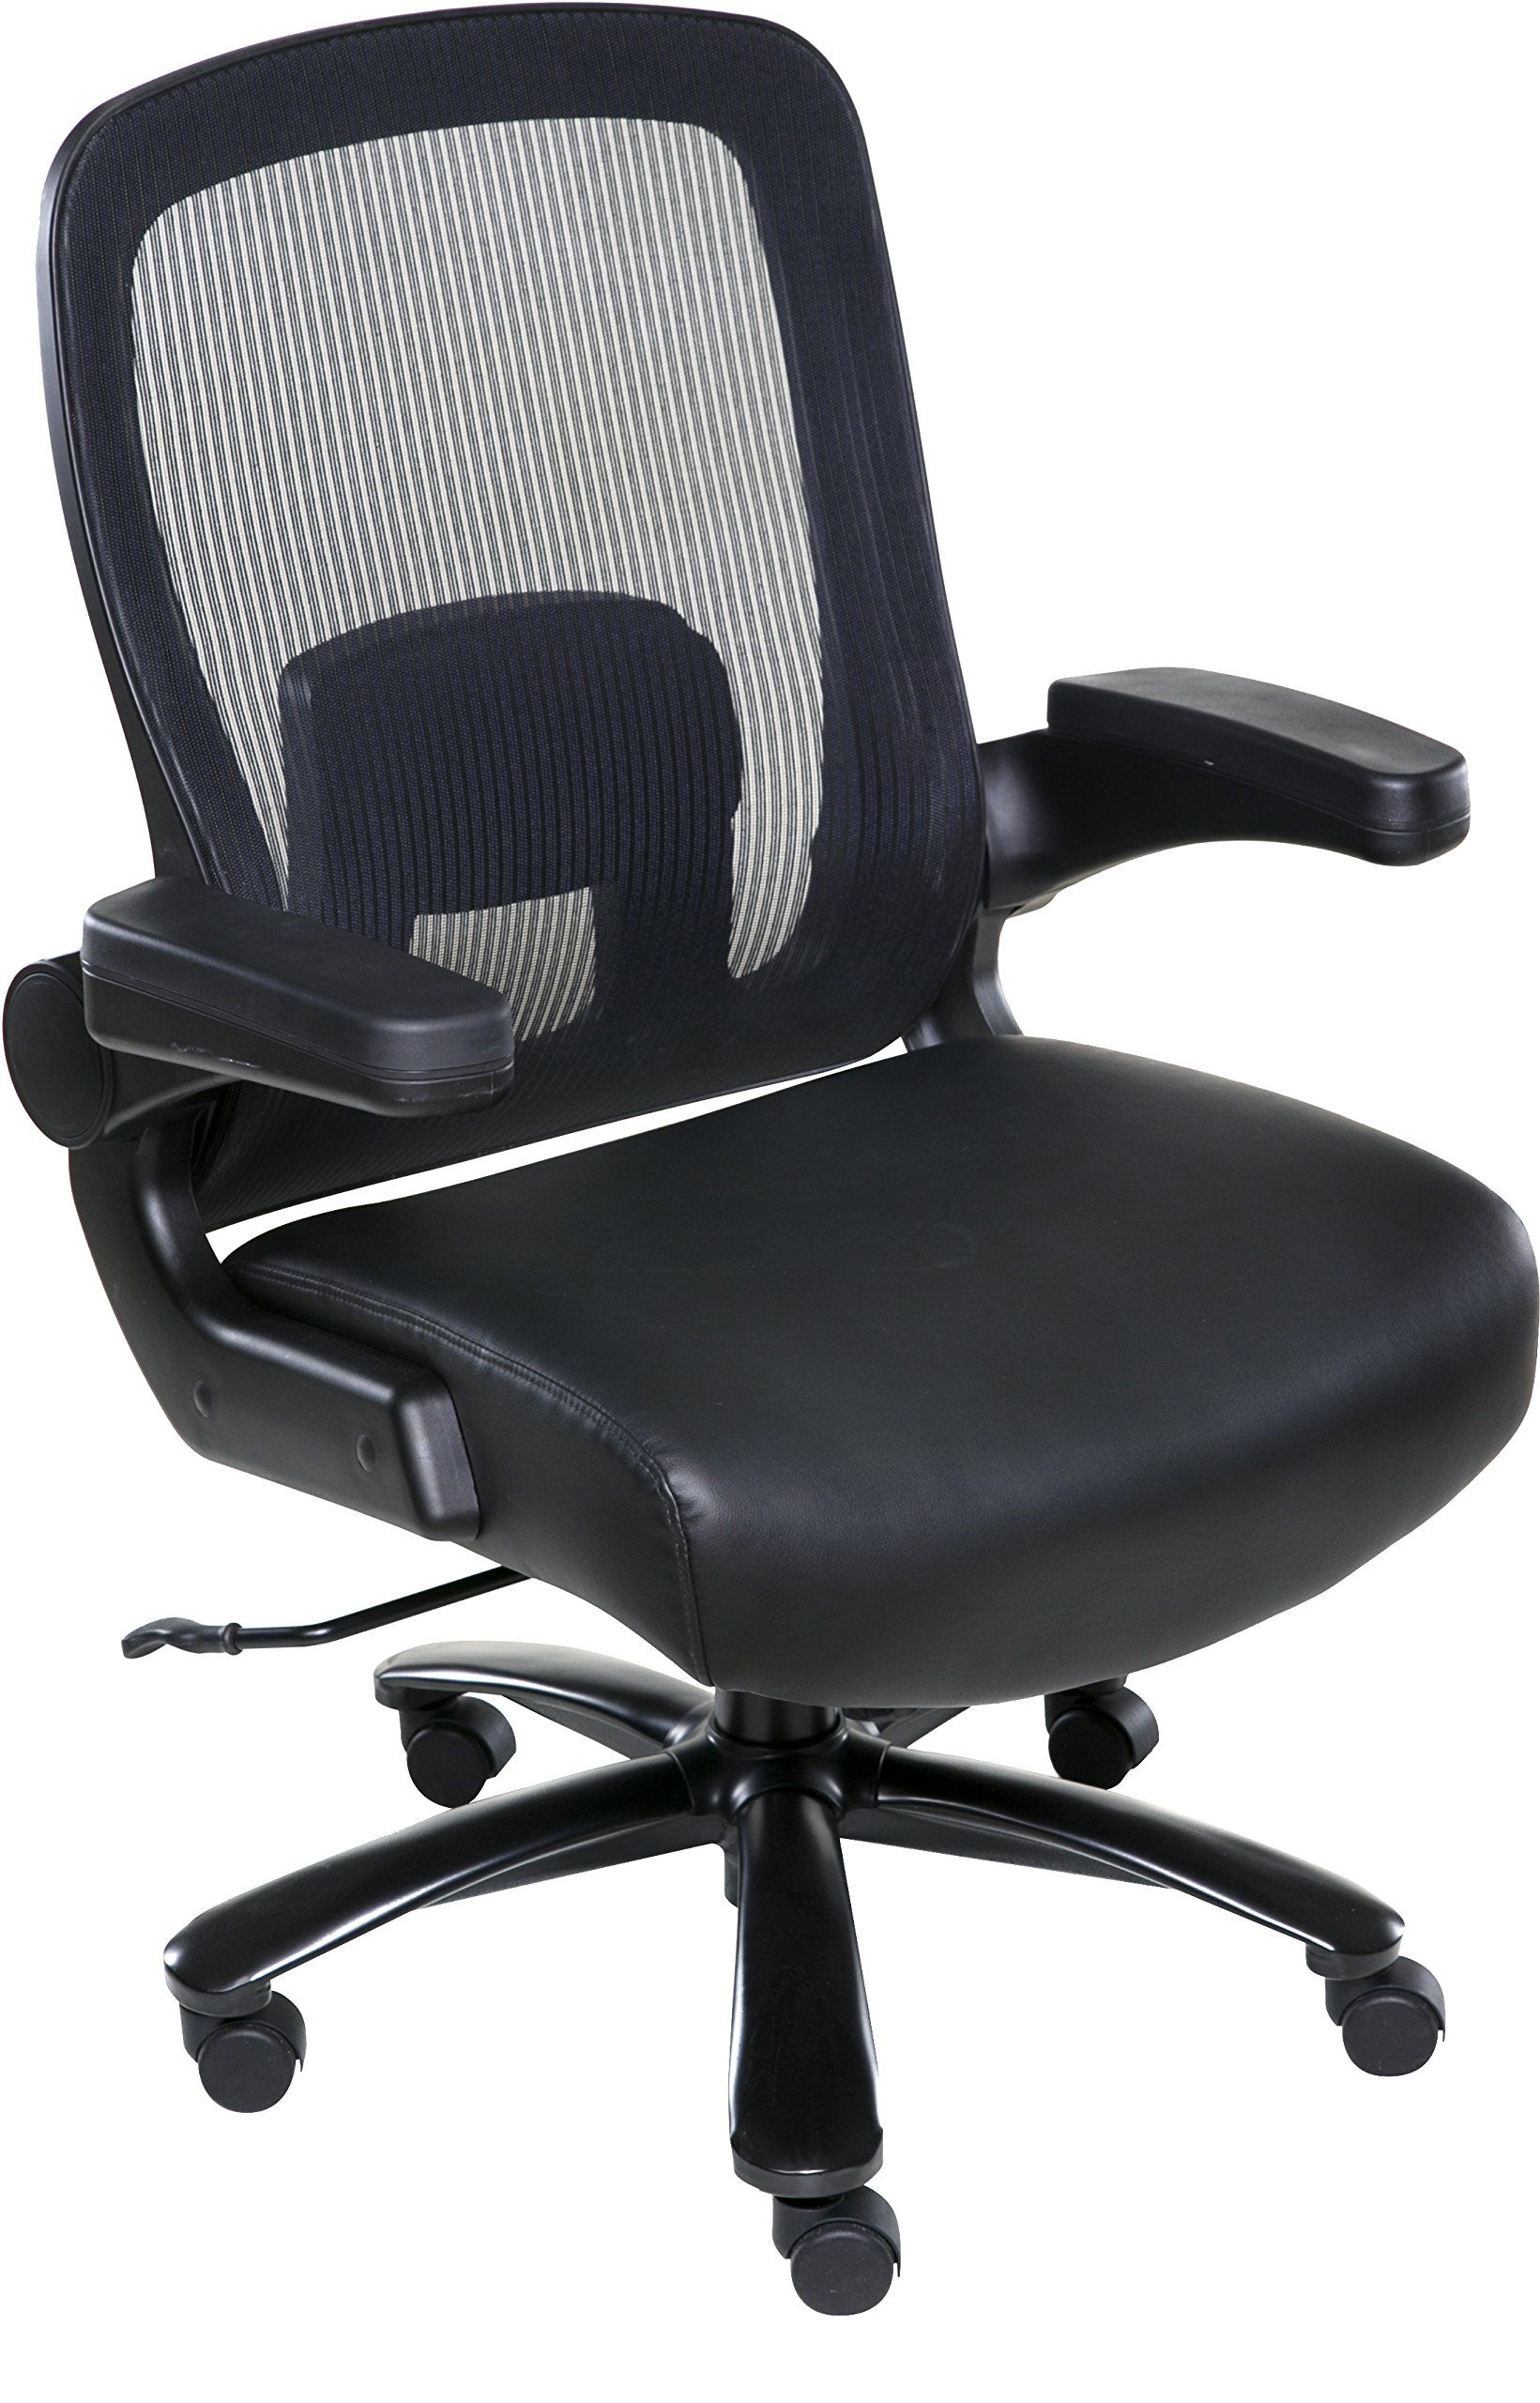 Workpro Commercial Mesh Back Executive Chair Black Onespace 60 5605t Taft Mesh Back Oversized Executive Chair With